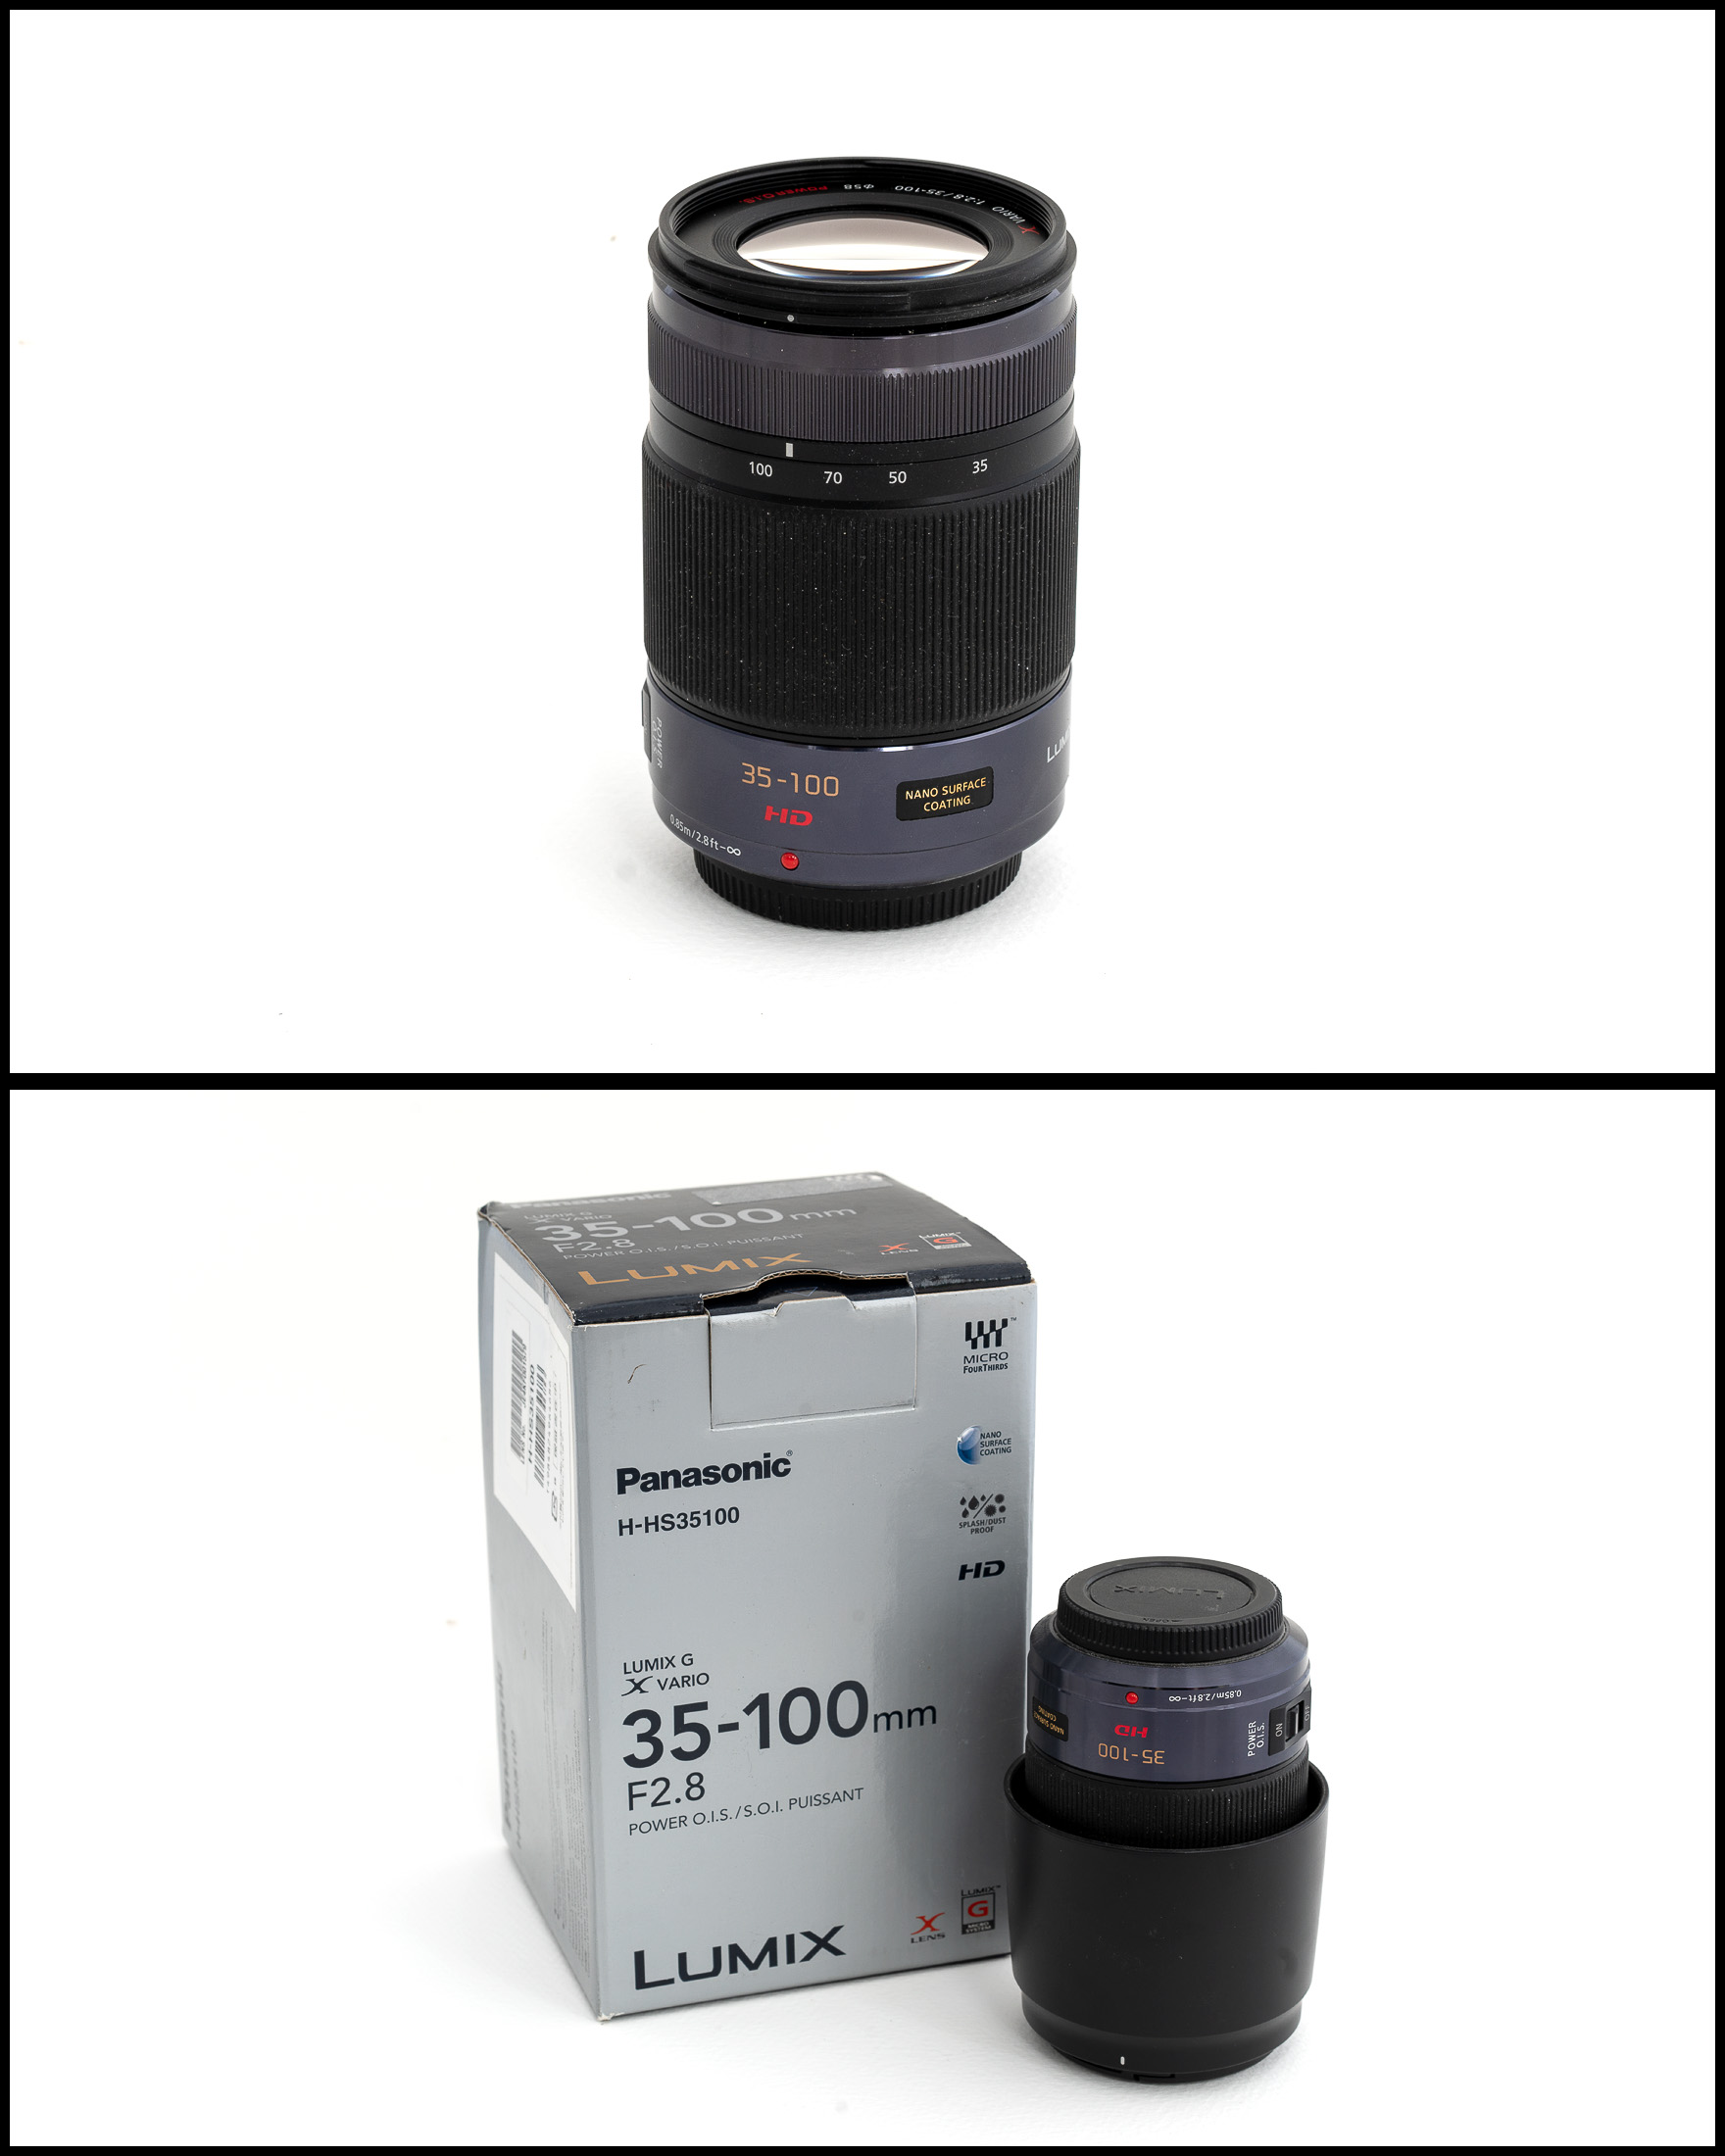 Panasonic 35-100mm f2.8 Power O.I.S    £500   In excellent condition comes with lens hood, front and rear caps, manual, pouch and original box.